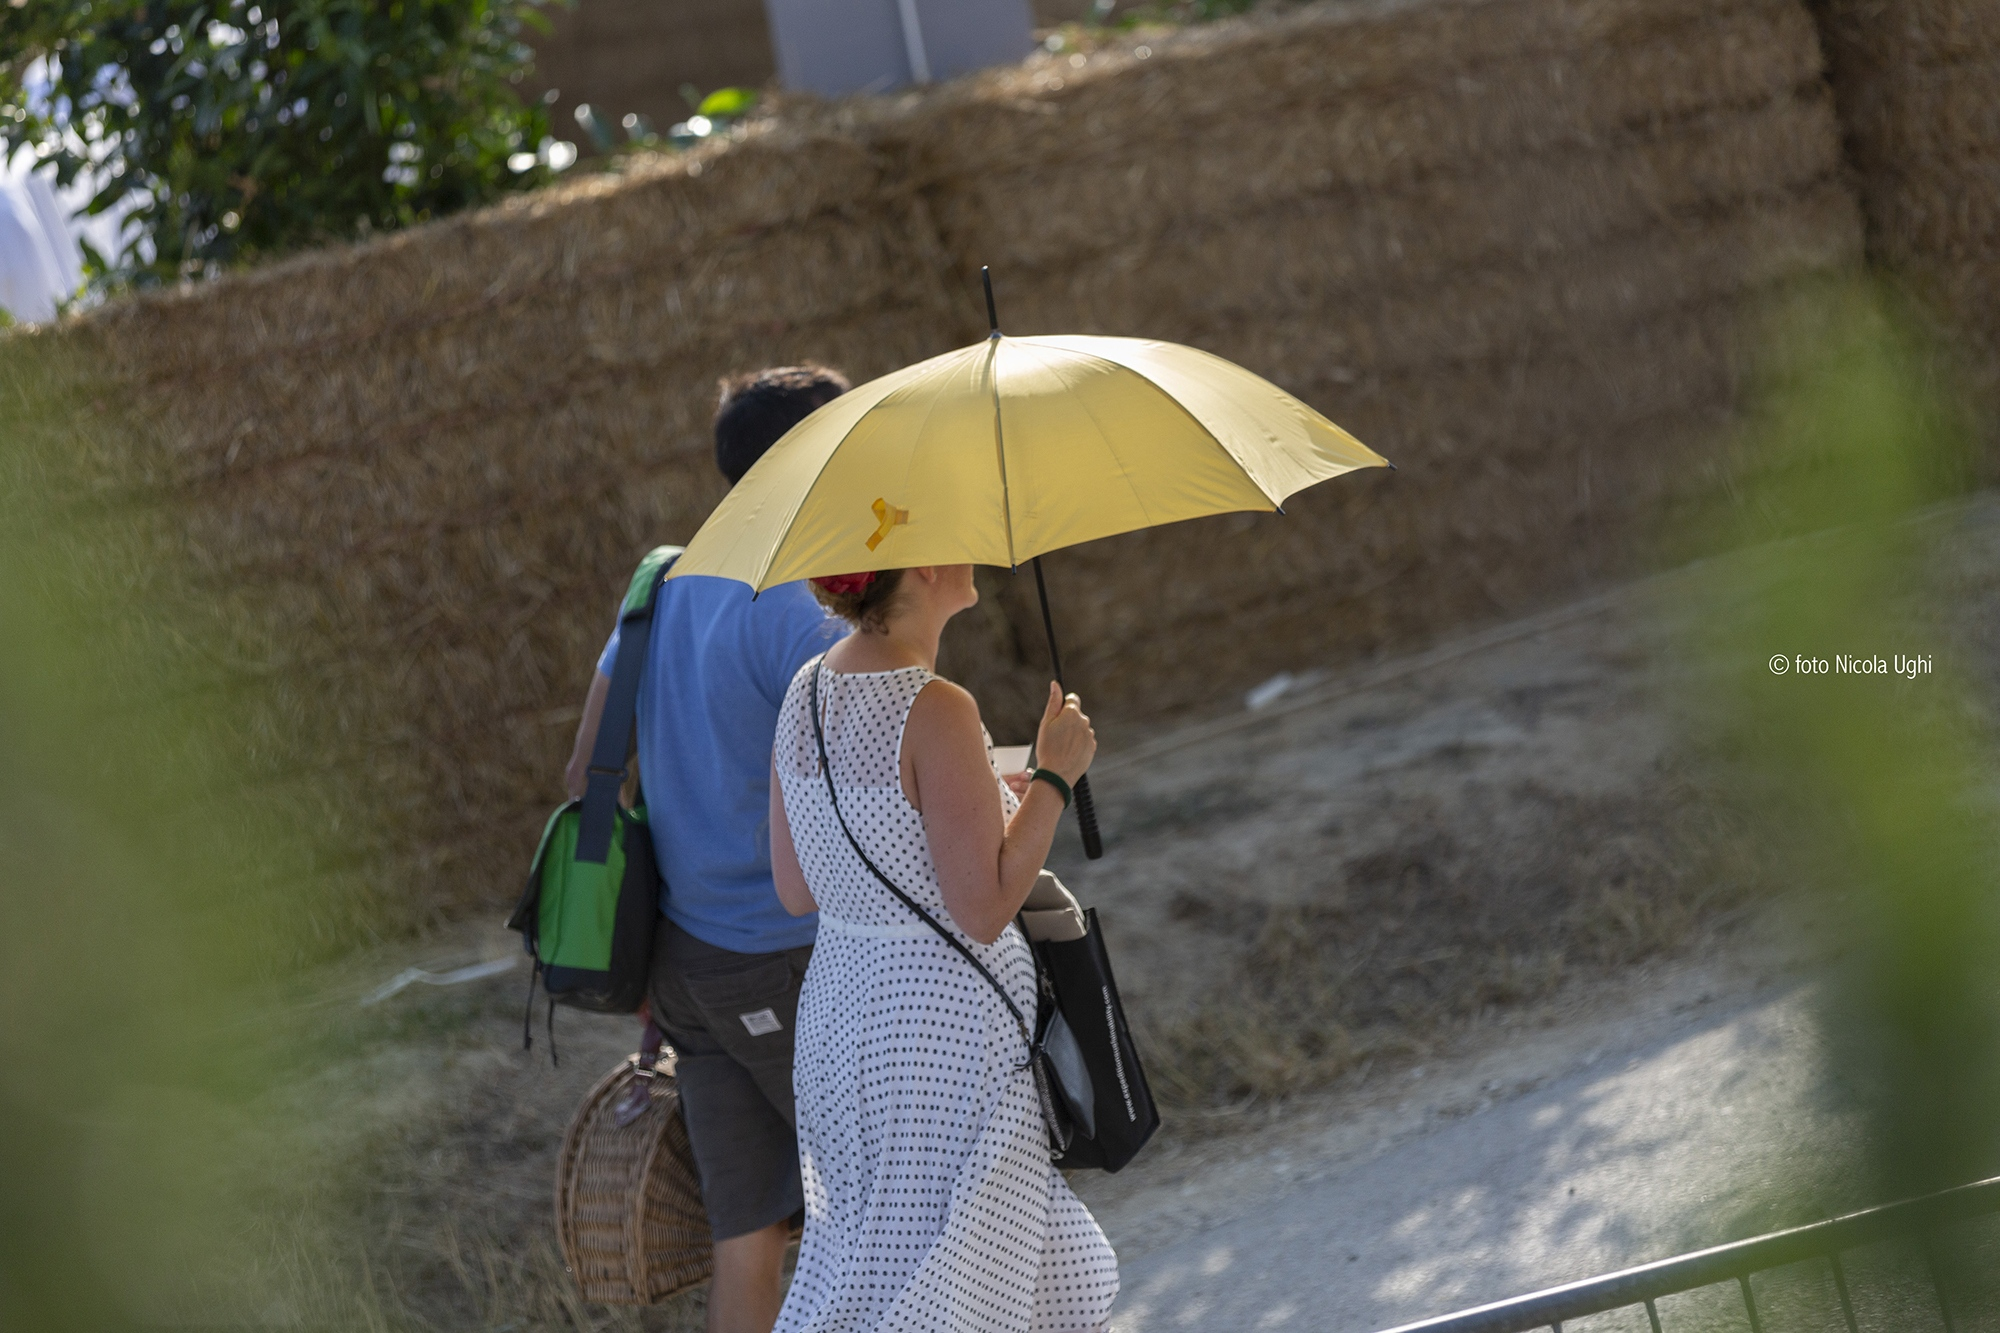 The afternoon is very hot in the tuscan hills. People are coming to listen the tenor well equipped for the sun